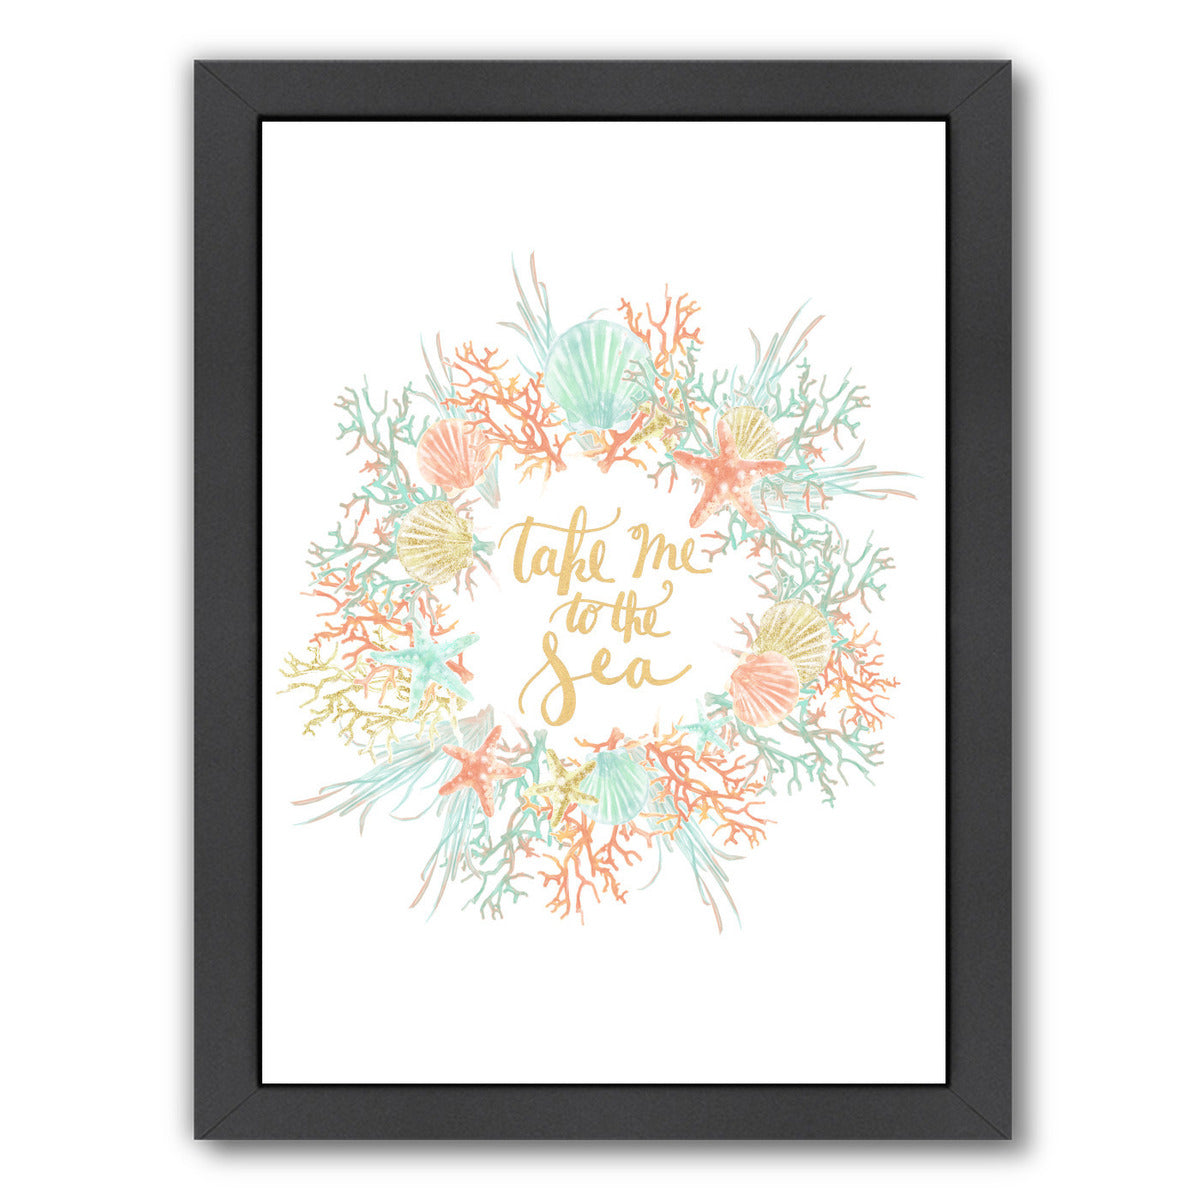 Take Me To The Sea Coastal Print by Jetty Printables Framed Print - Wall Art - Americanflat